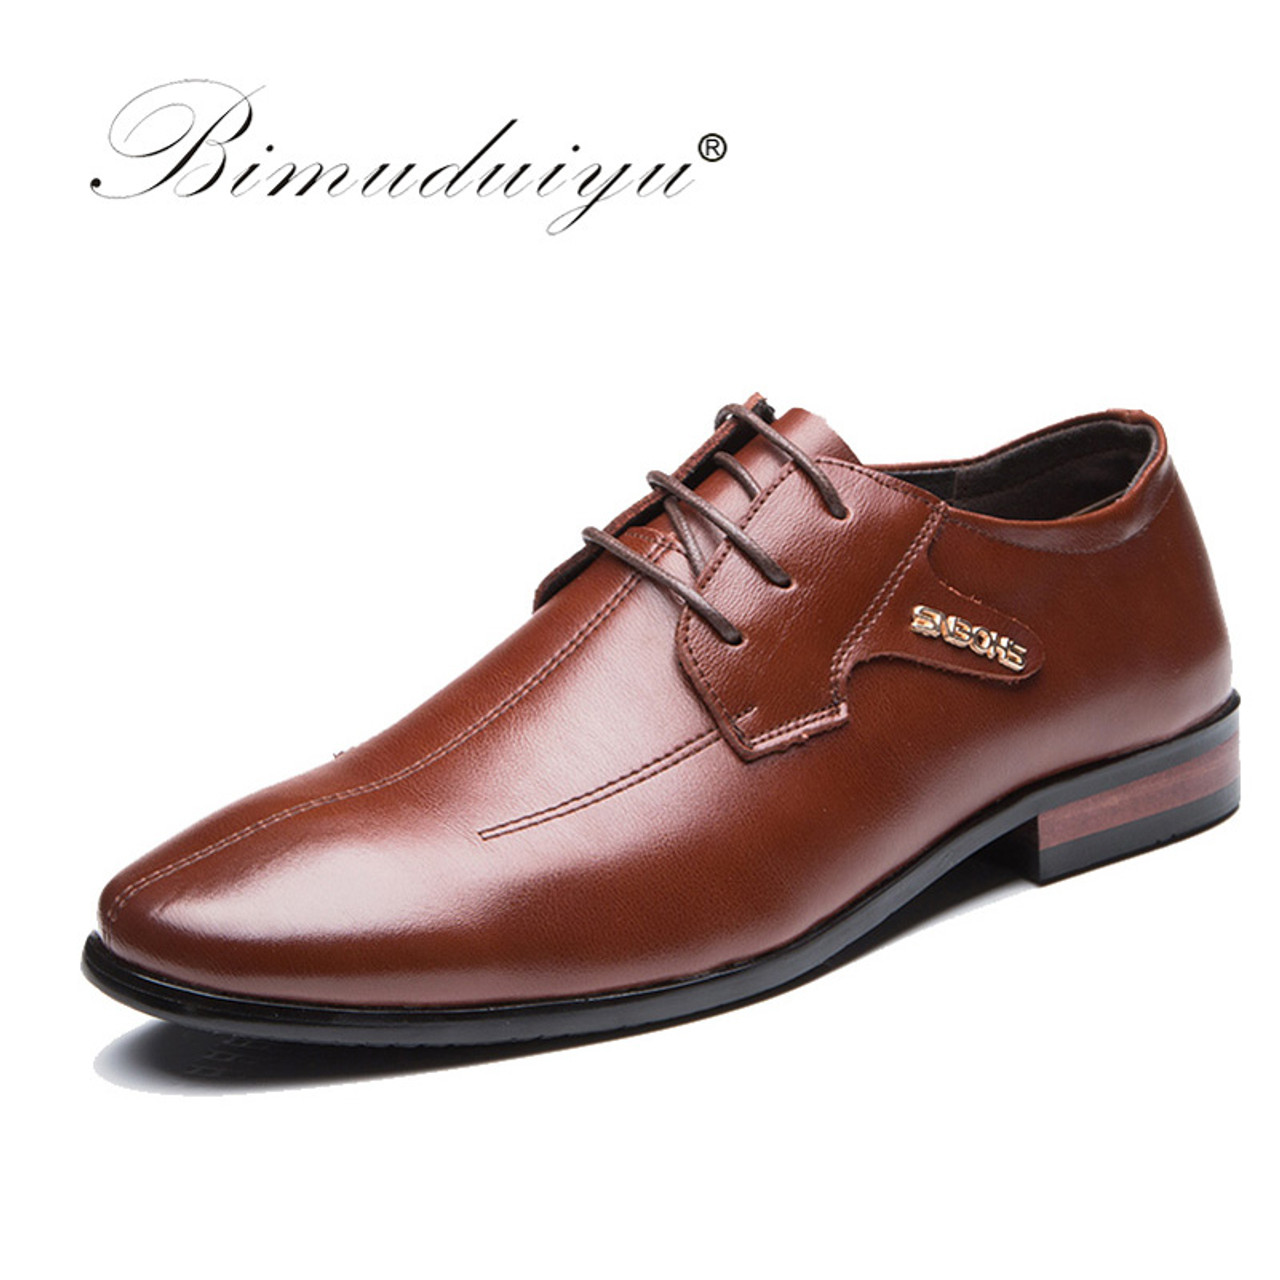 d69516736 Men s Dress Shoes Imported Business Formal Shoes High Quality Leather Shoes  Men Lace-Up Luxury ...